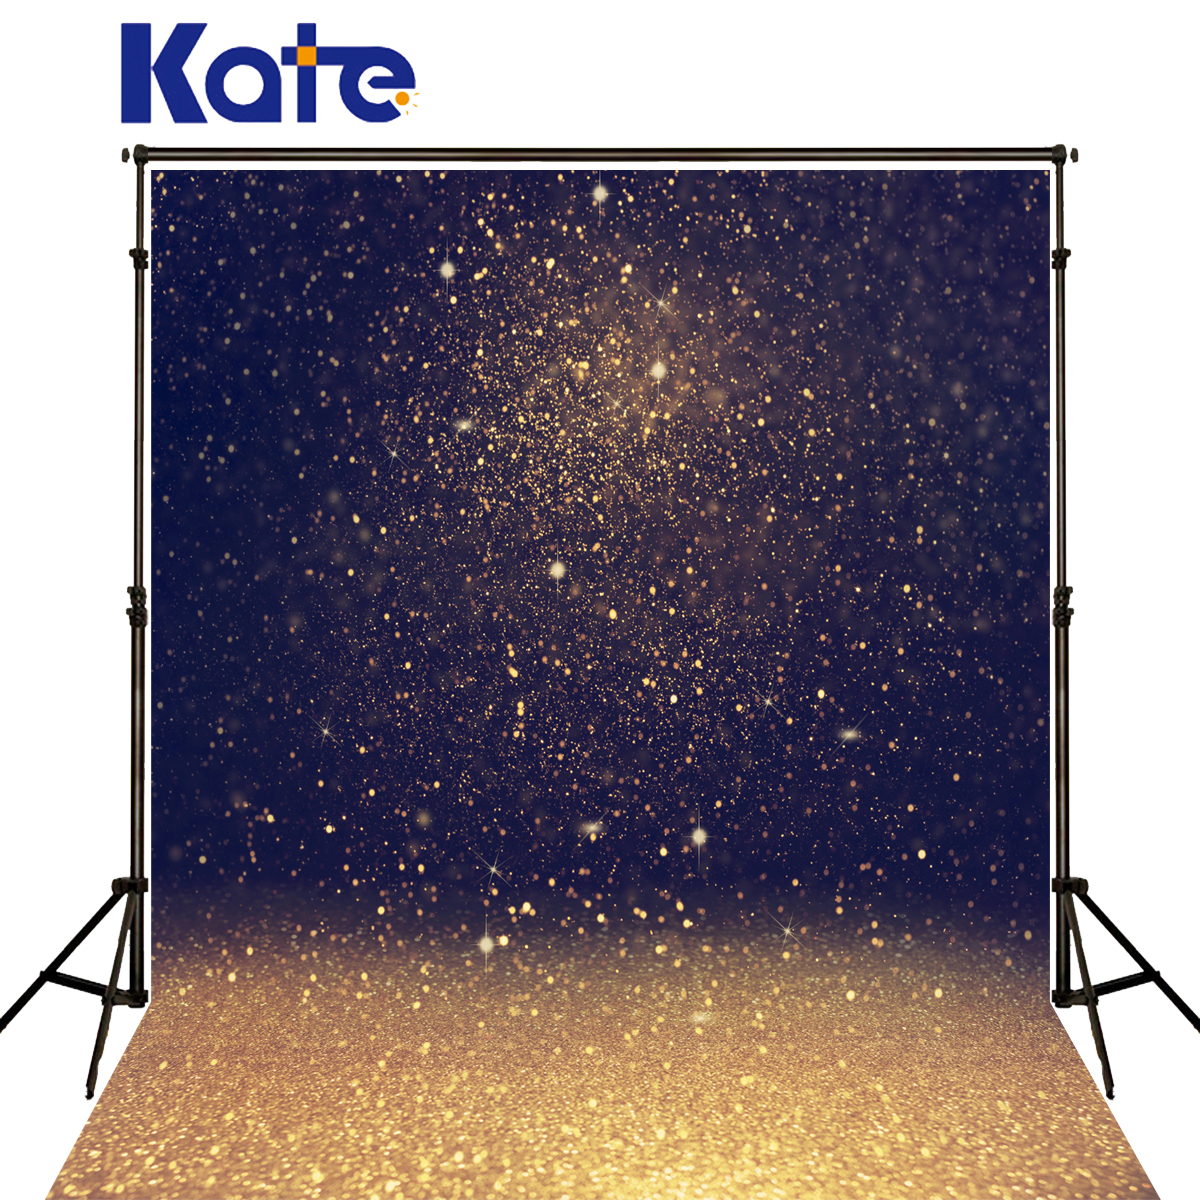 Kate Christmas Backdrop Photography Gold Spot Dream Fundo Fotografico Madeira Lighting Night Fall Background For Photo Shoot 300cm 200cm about 10ft 6 5ft fundo butterflies fluttering woods3d baby photography backdrop background lk 2024